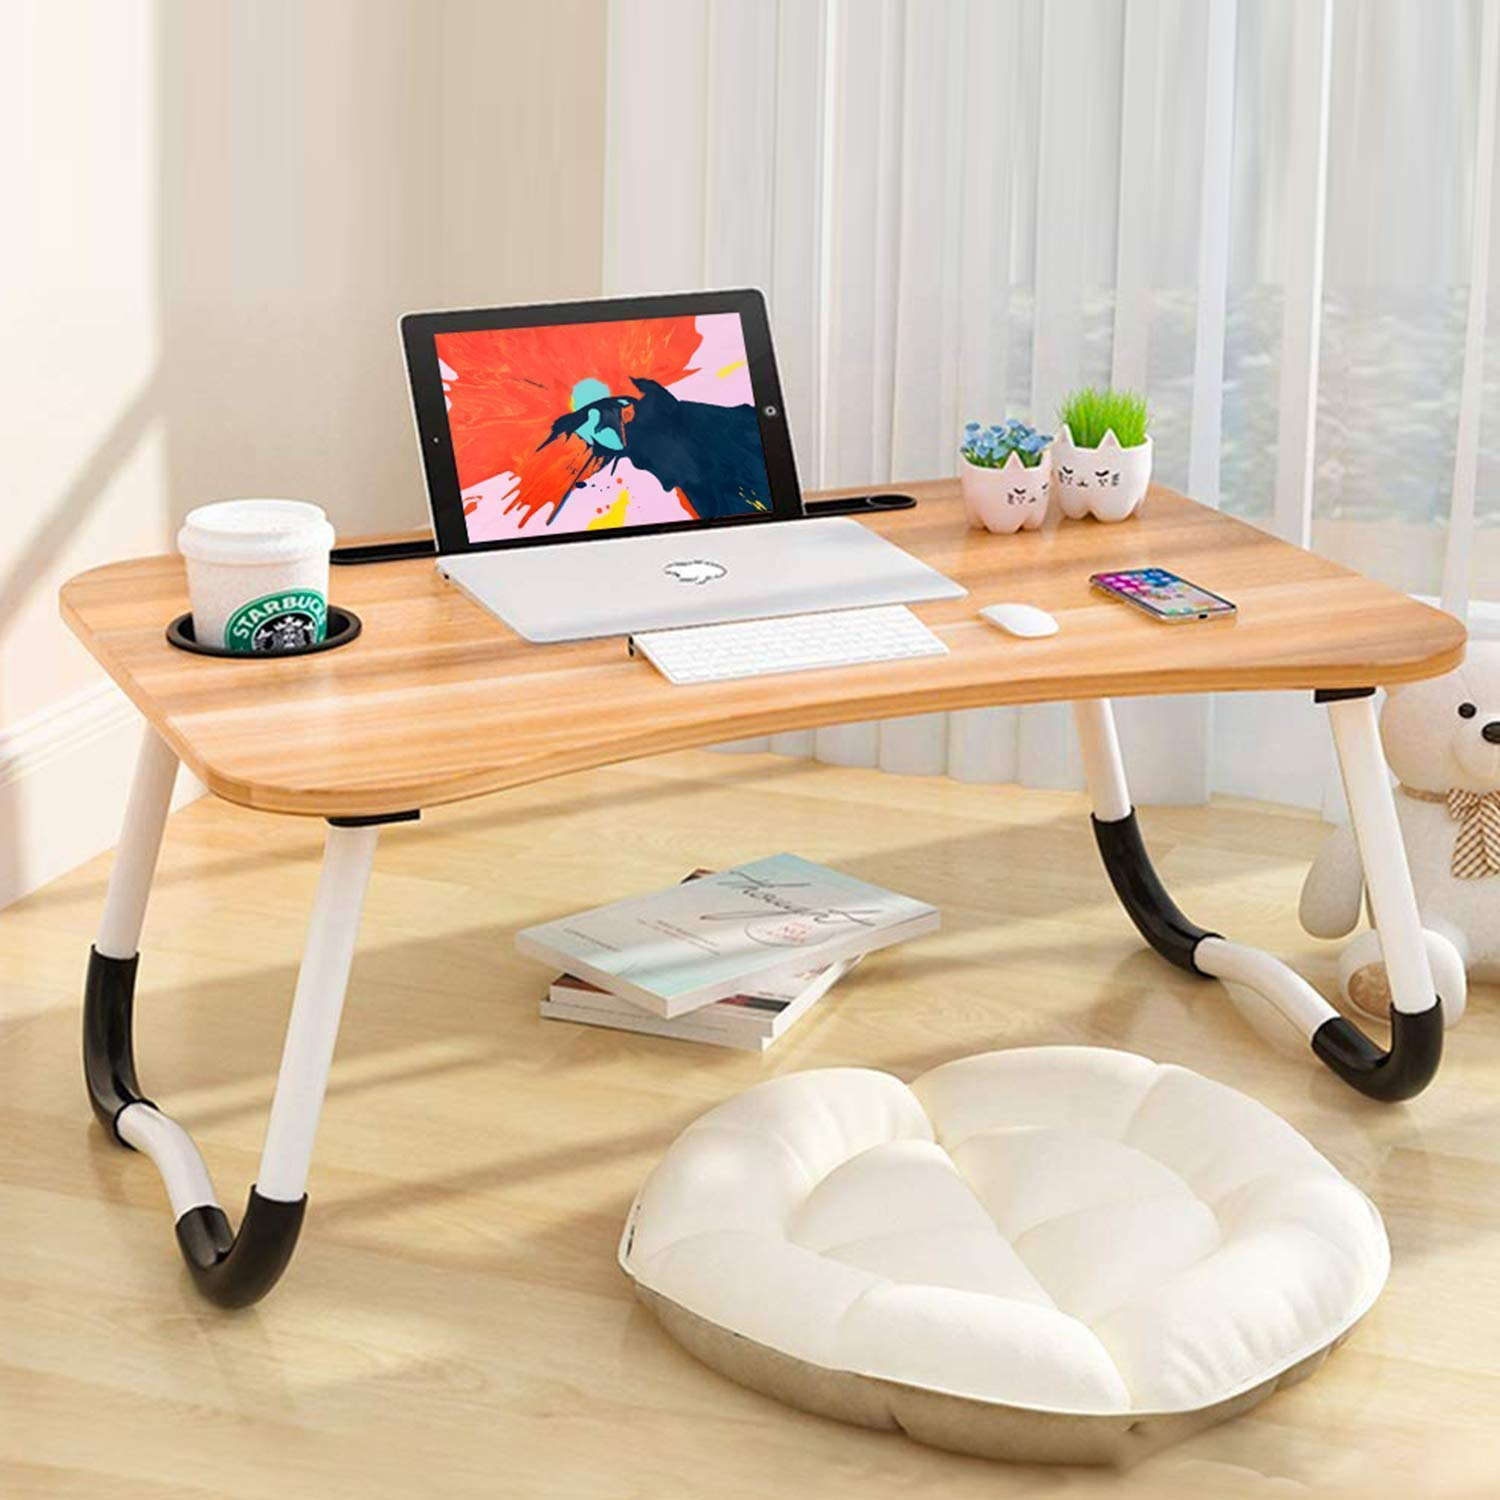 Project Runway Lightbox Lapdesk Super Se Buy Online In Aruba At Desertcart